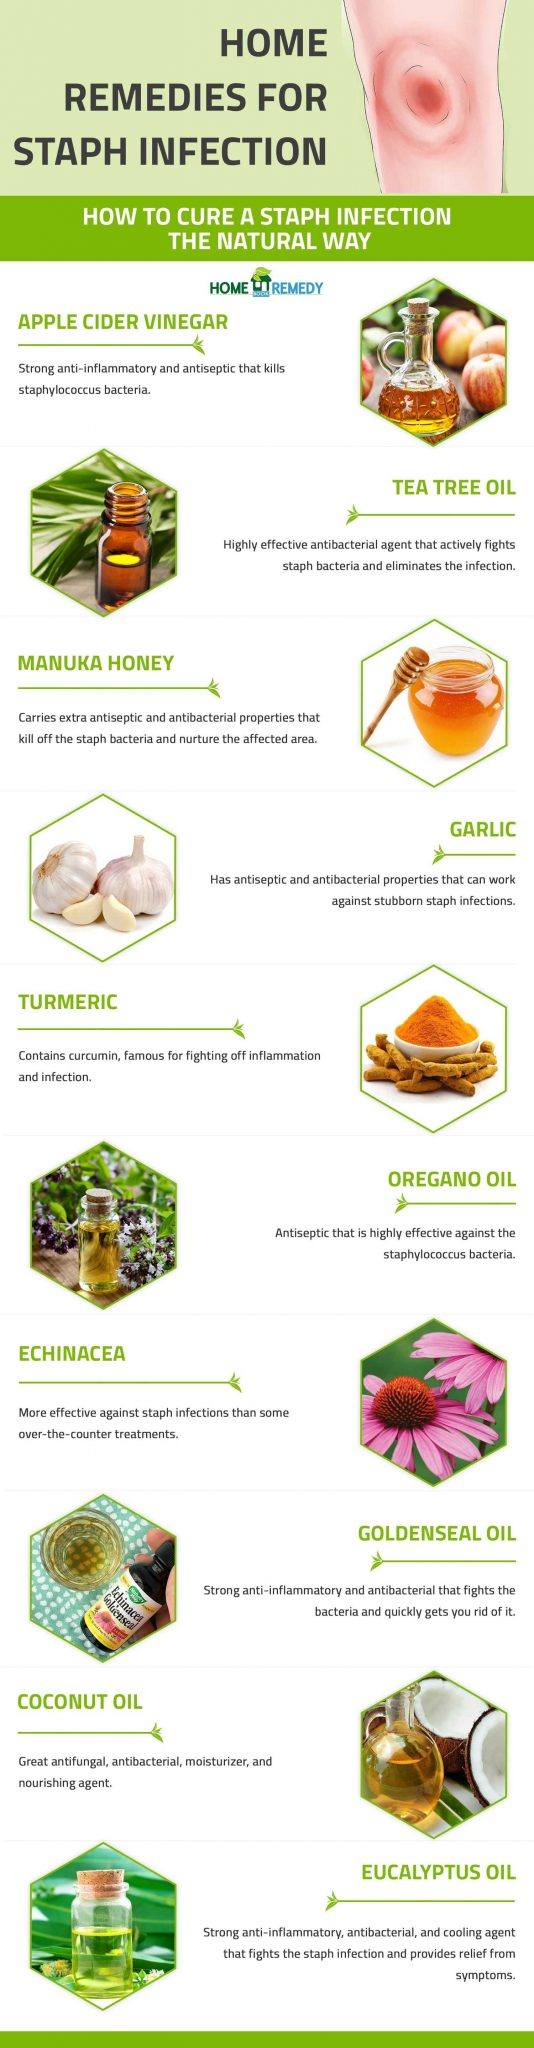 home remedies for staph infection infographic